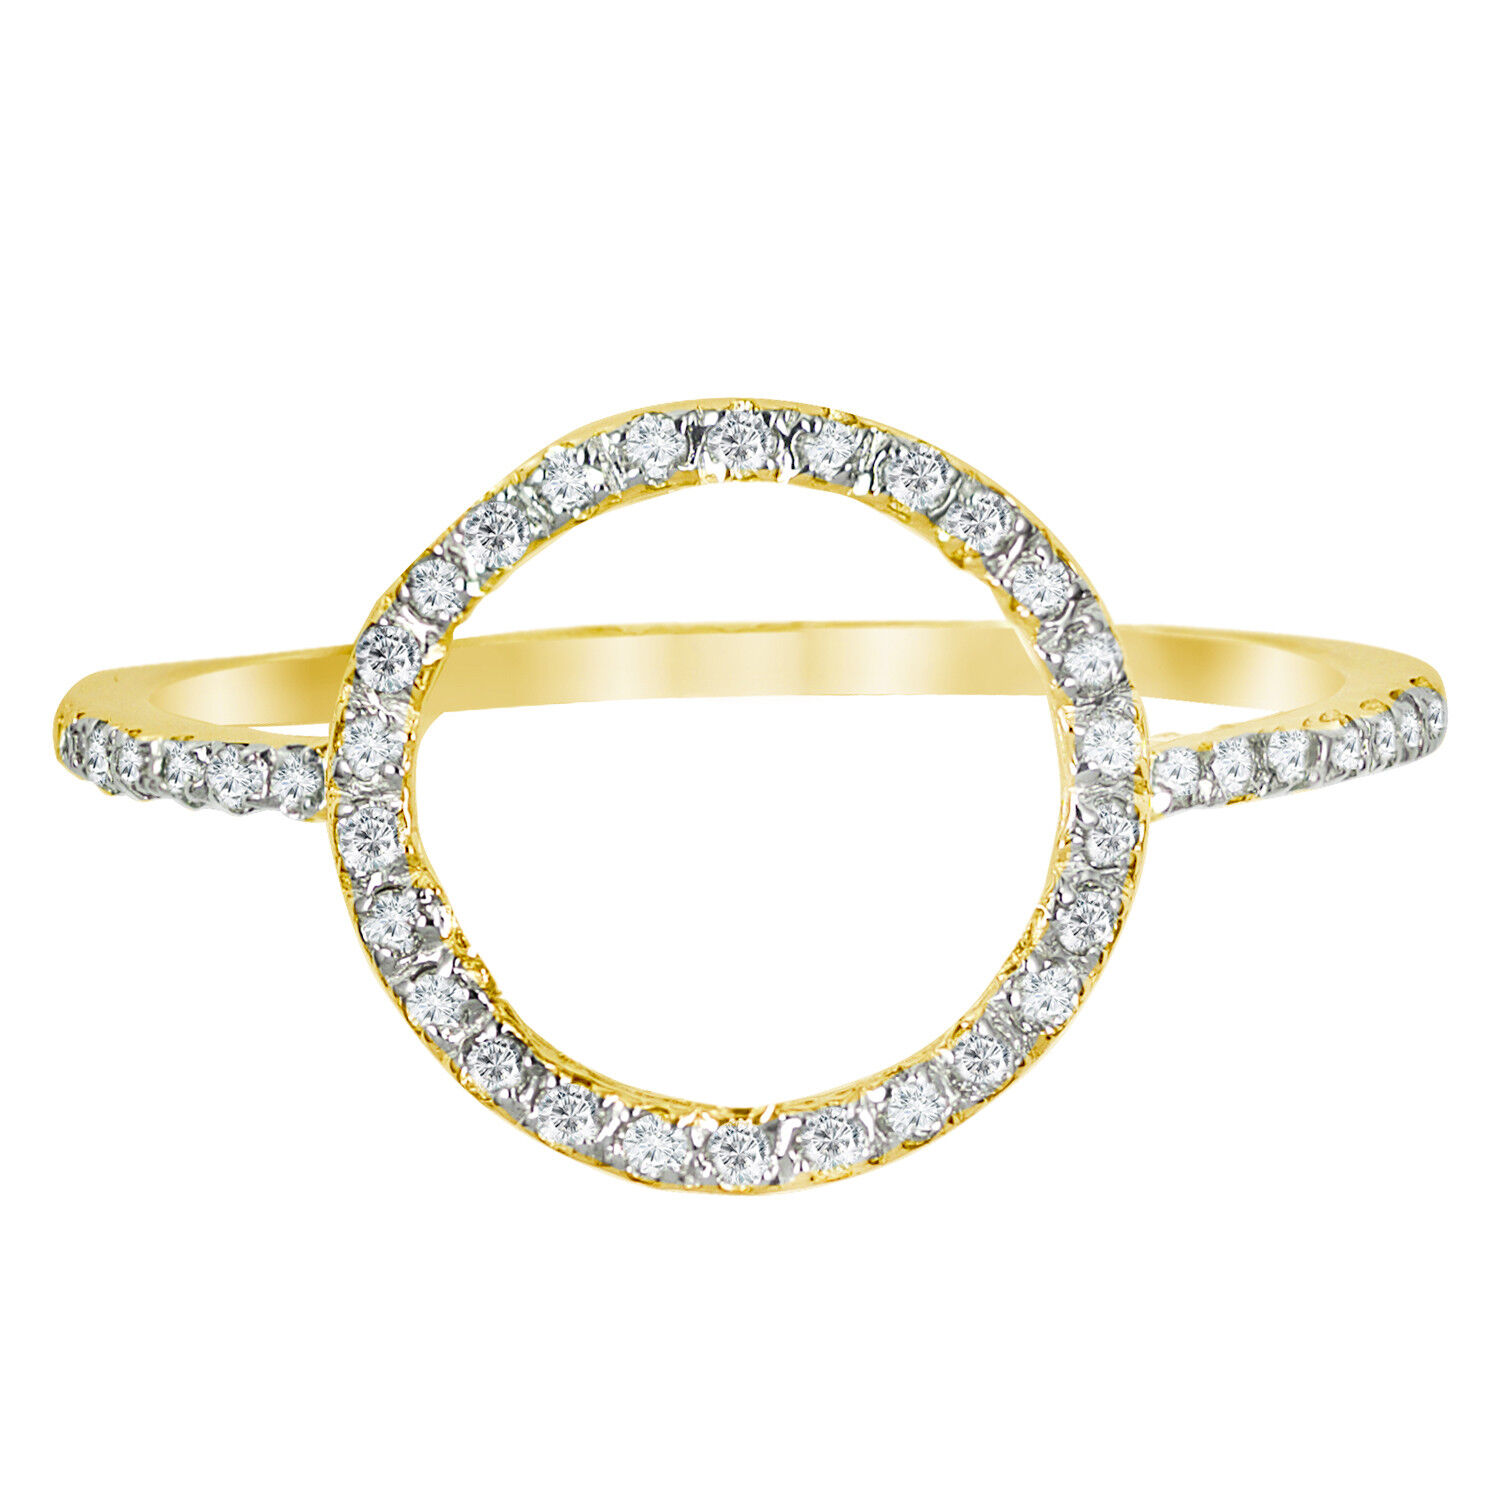 14k gold 0.25ctw Diamond Open Circle Ring Size 6  O  Ring Handmade in USA NEW